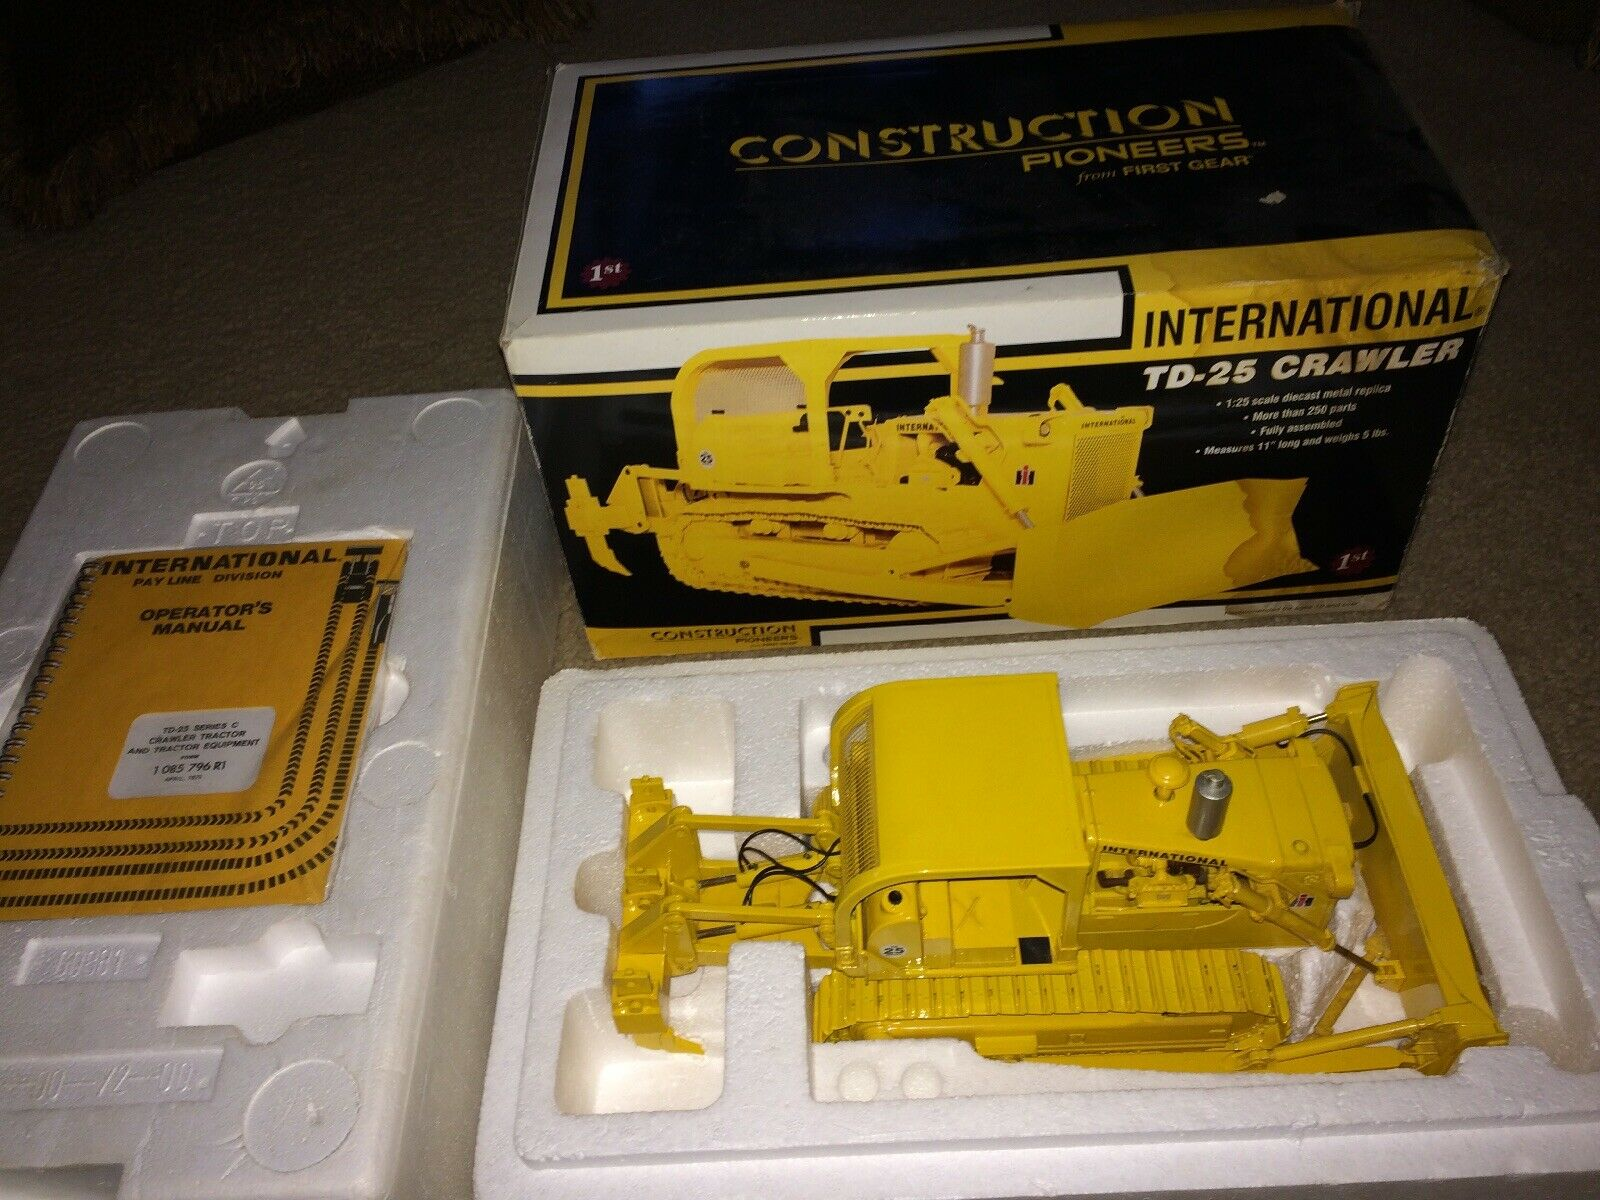 2002 First Gear International TD-25 Crawler Bulldozer 79-0156 1 25th With box